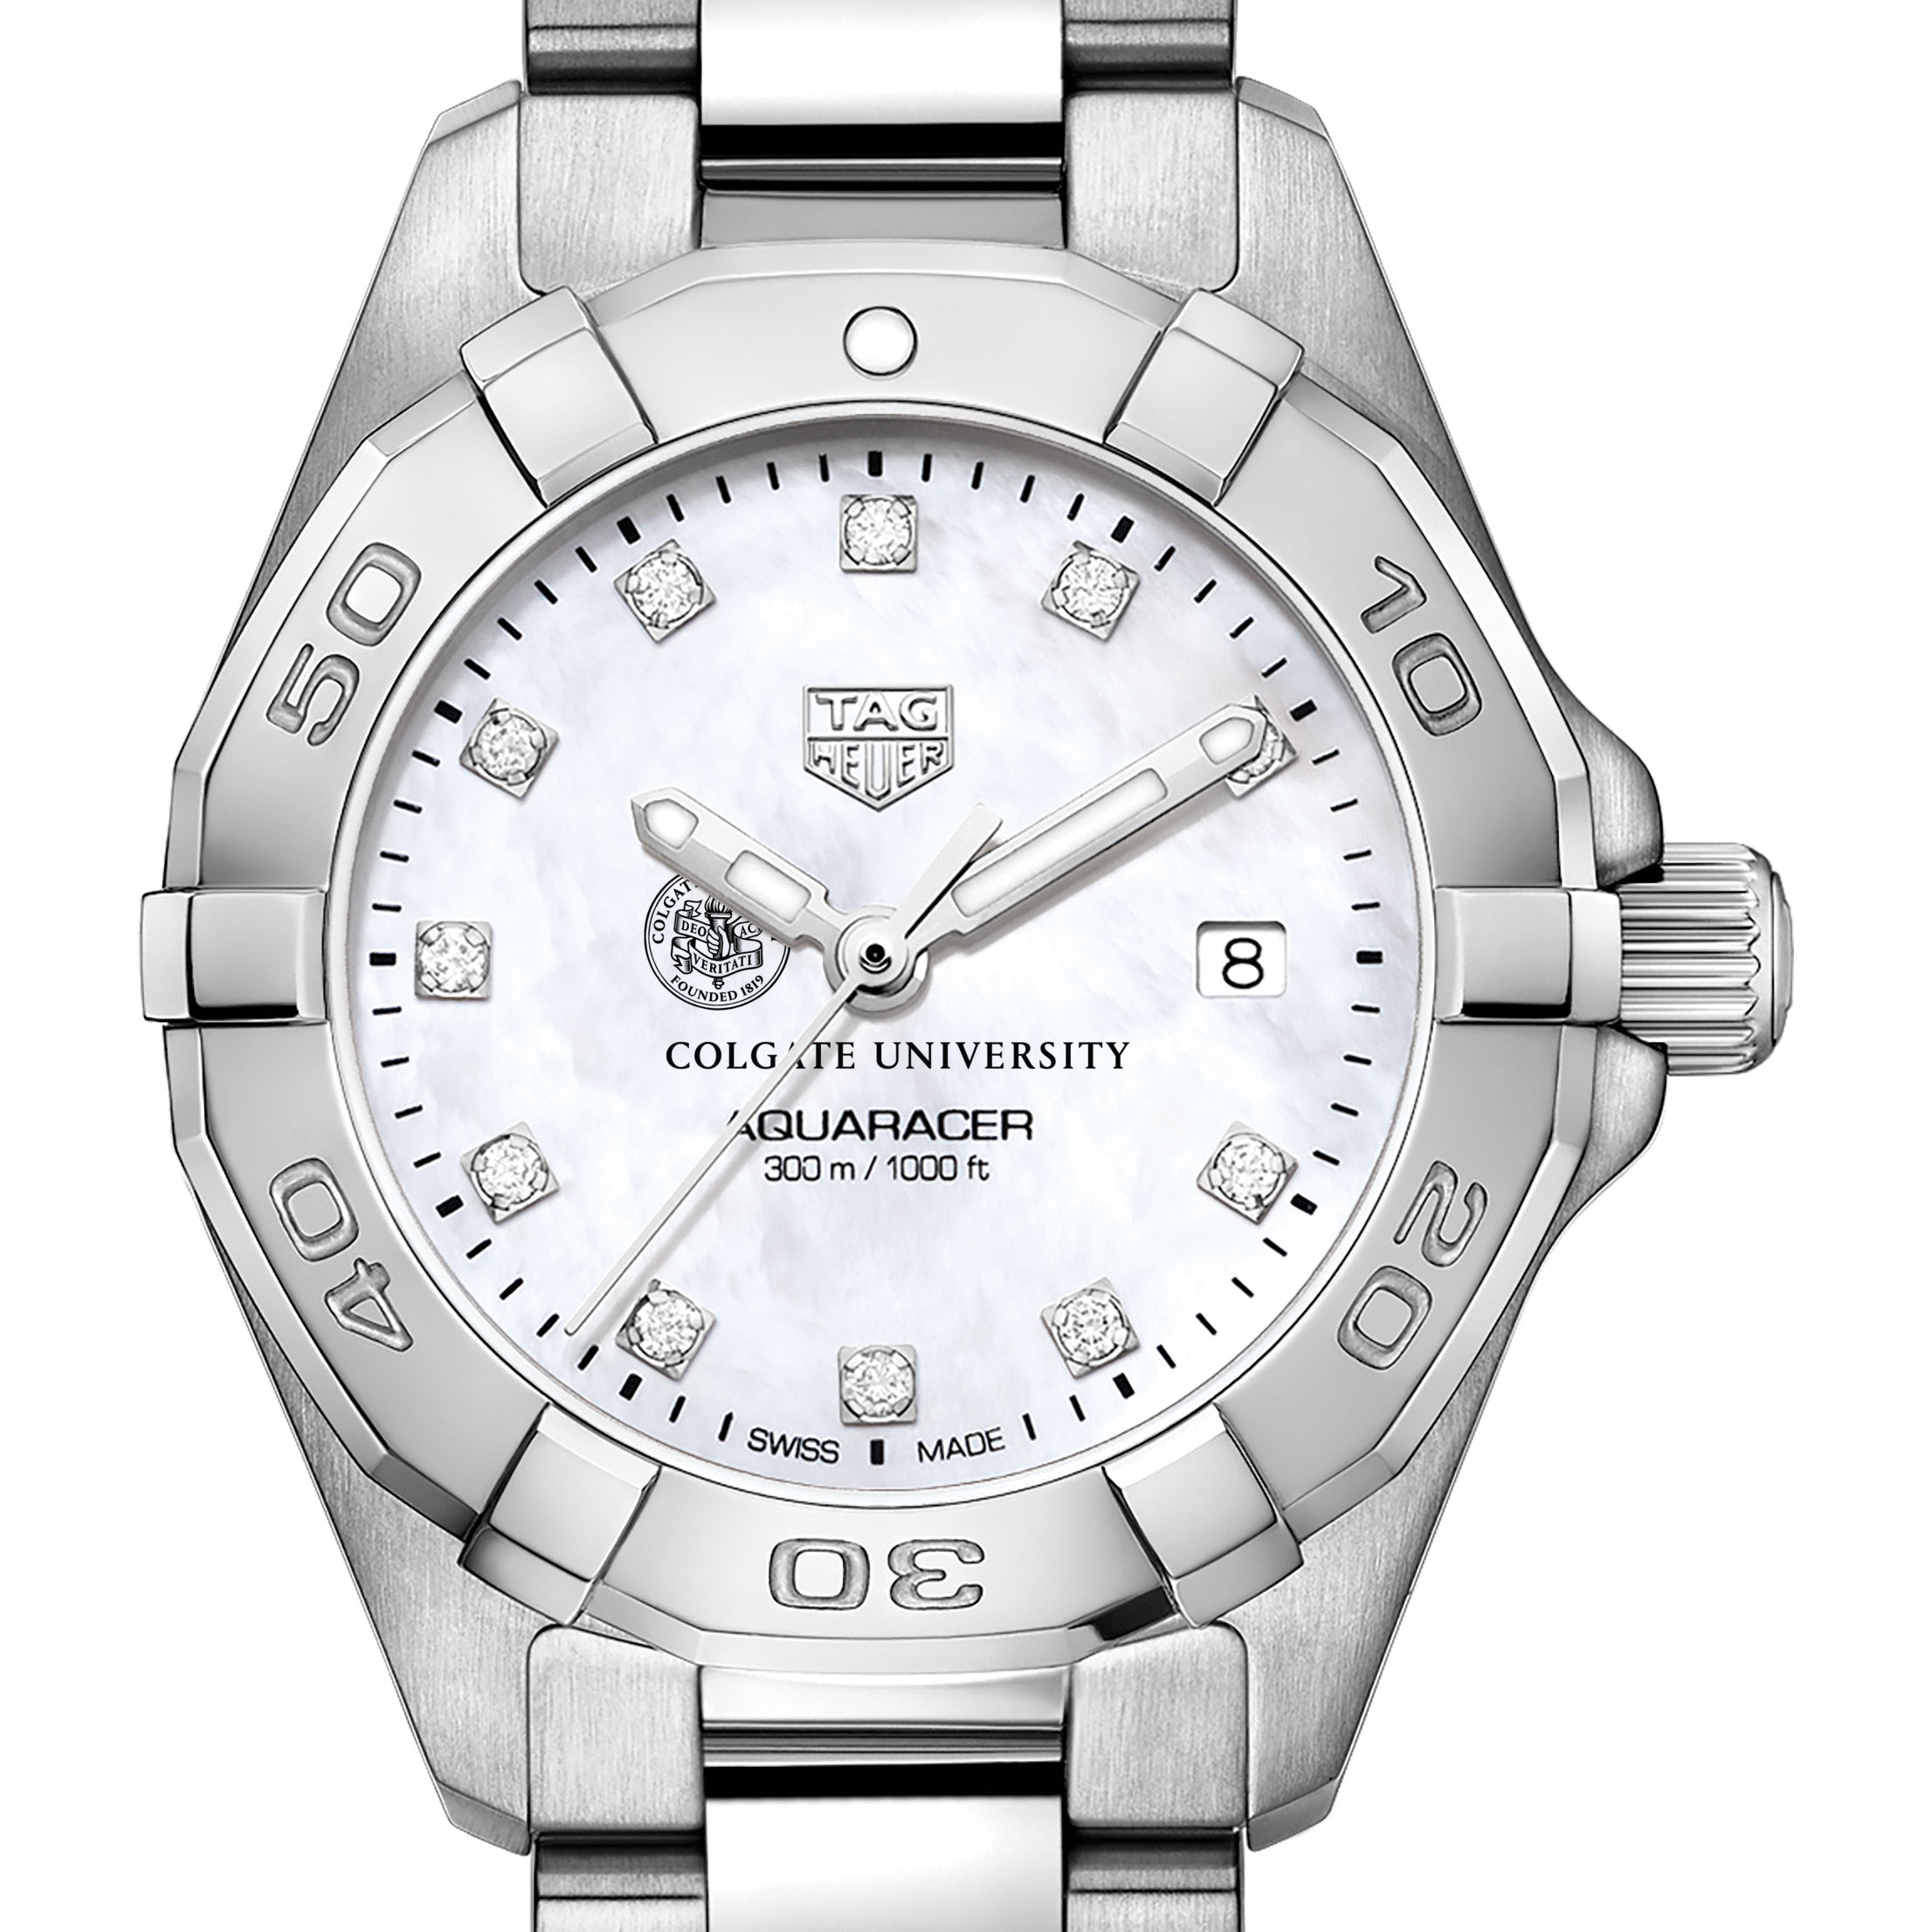 Colgate W's TAG Heuer Steel Aquaracer w MOP Dia Dial - Image 1